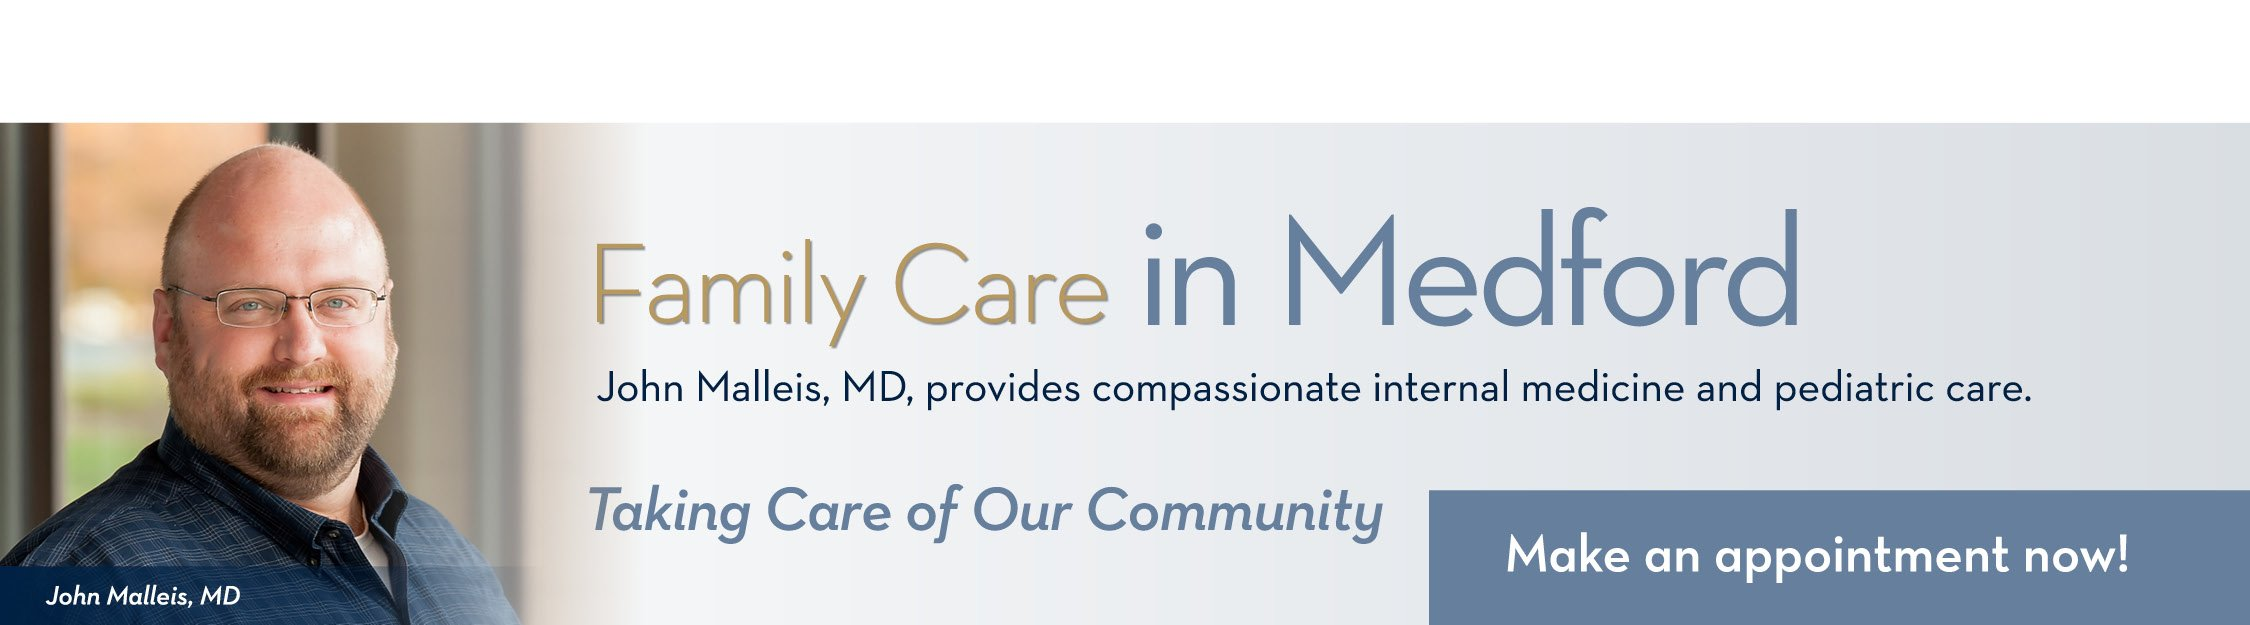 John Malleis, Family Care in Medford - Asante Physician Partners